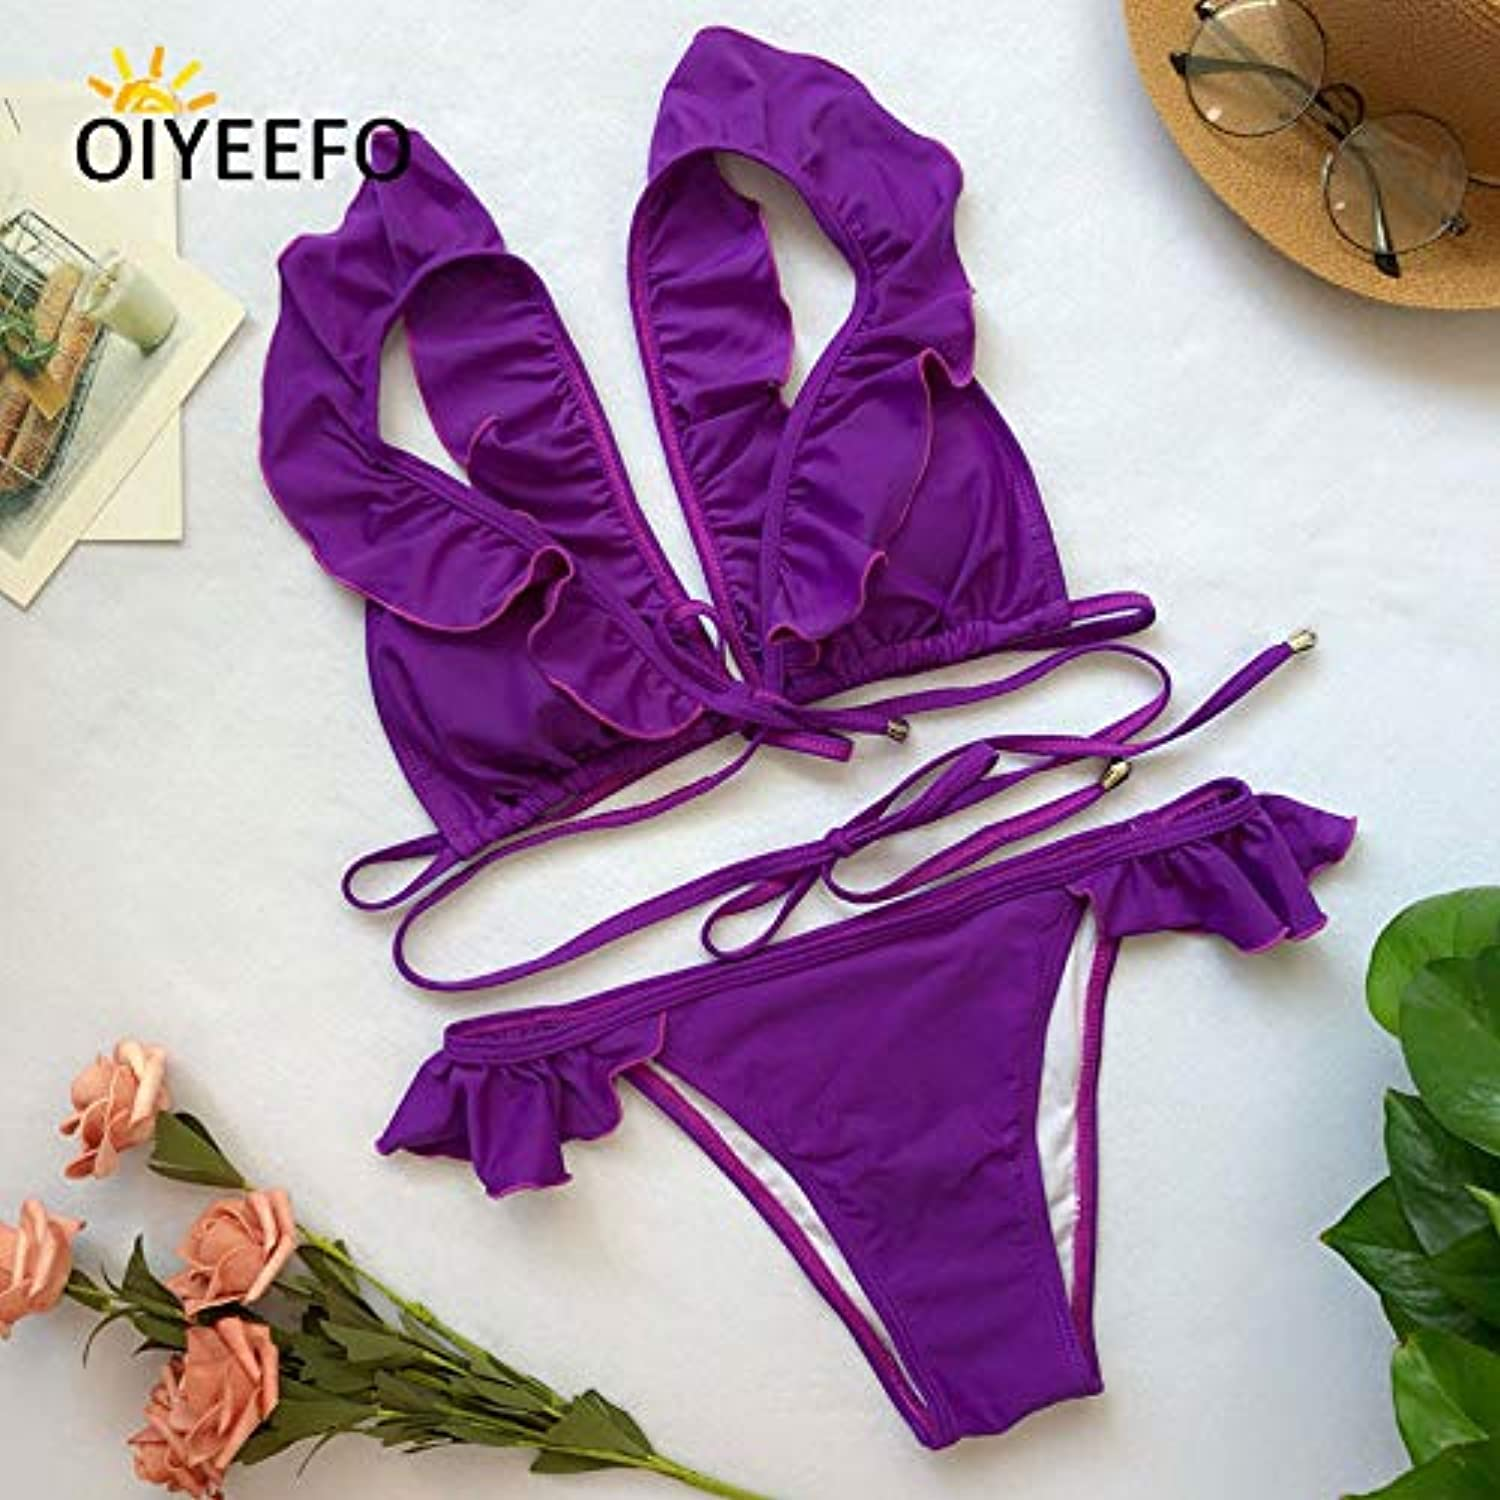 7fca7363a76 HITSAN Oiyeefo colors Shiny Green Ruffle Bikini Brazilian Flounce Frilly  Swimsuit Straps Swimwear Female Swim Women Beach May color Purple Size L  Suit 4 ...